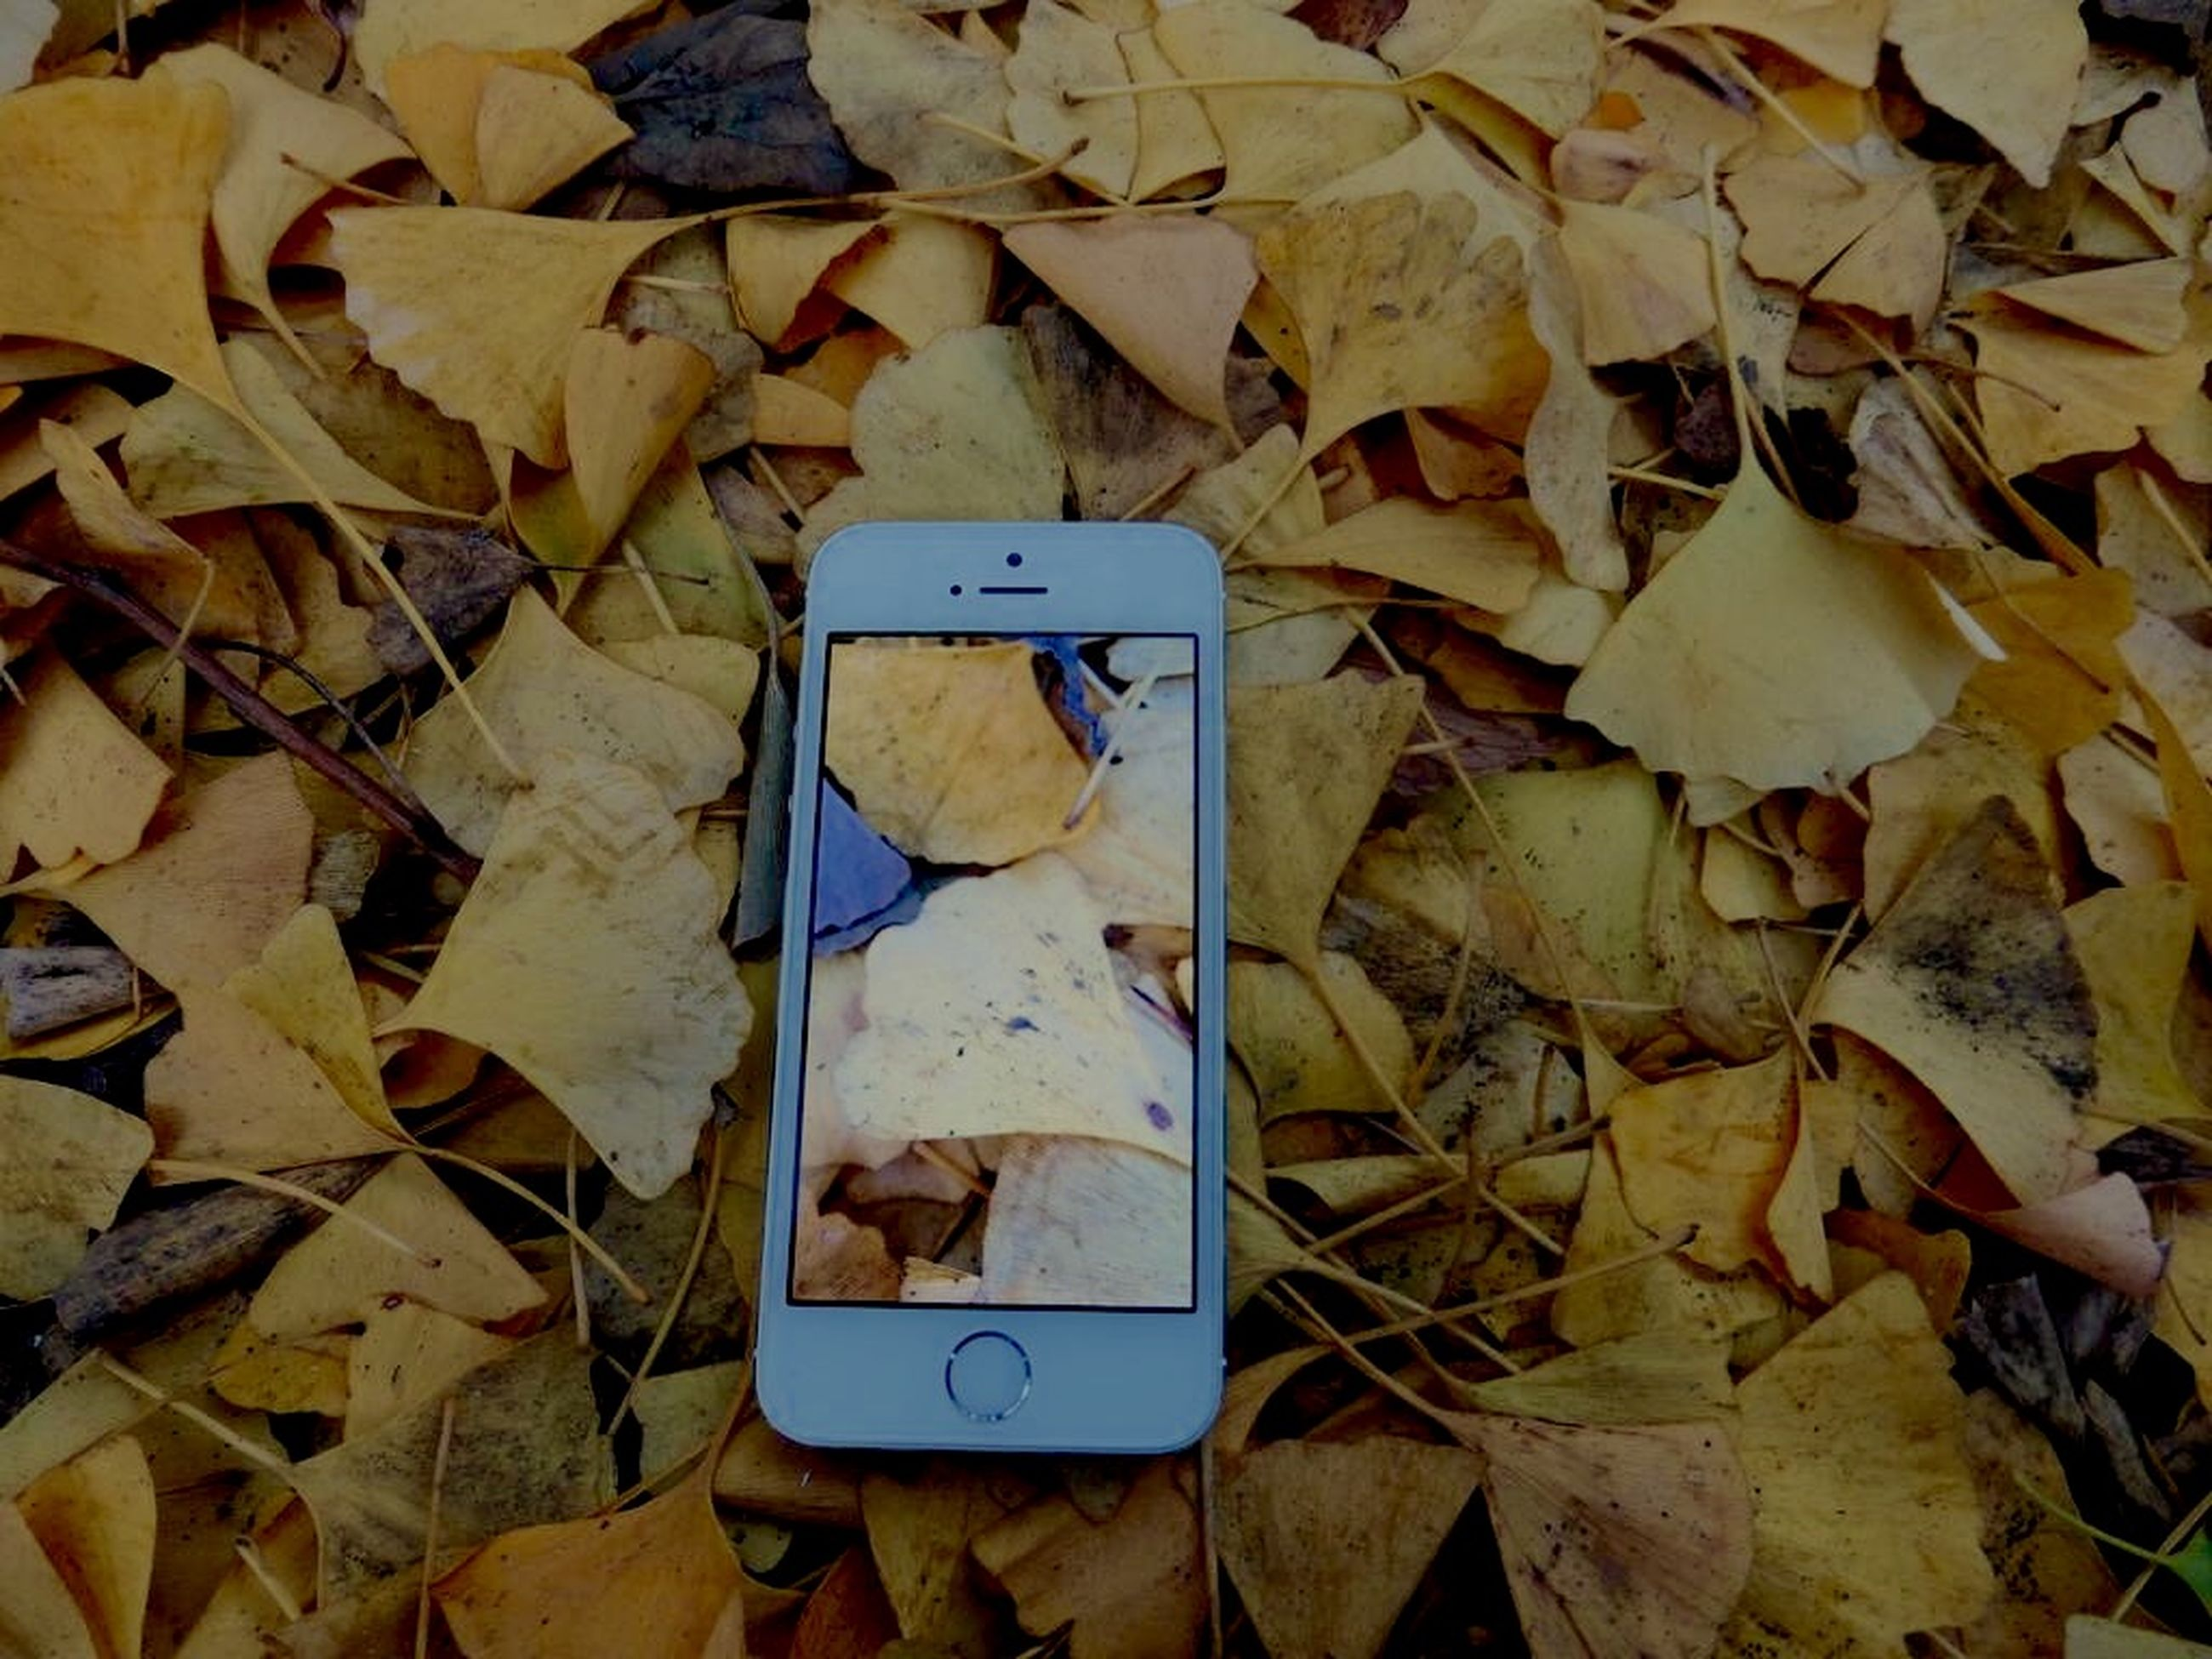 leaf, autumn, dry, high angle view, leaves, text, change, close-up, communication, paper, fallen, day, messy, western script, season, no people, aging process, outdoors, still life, abundance